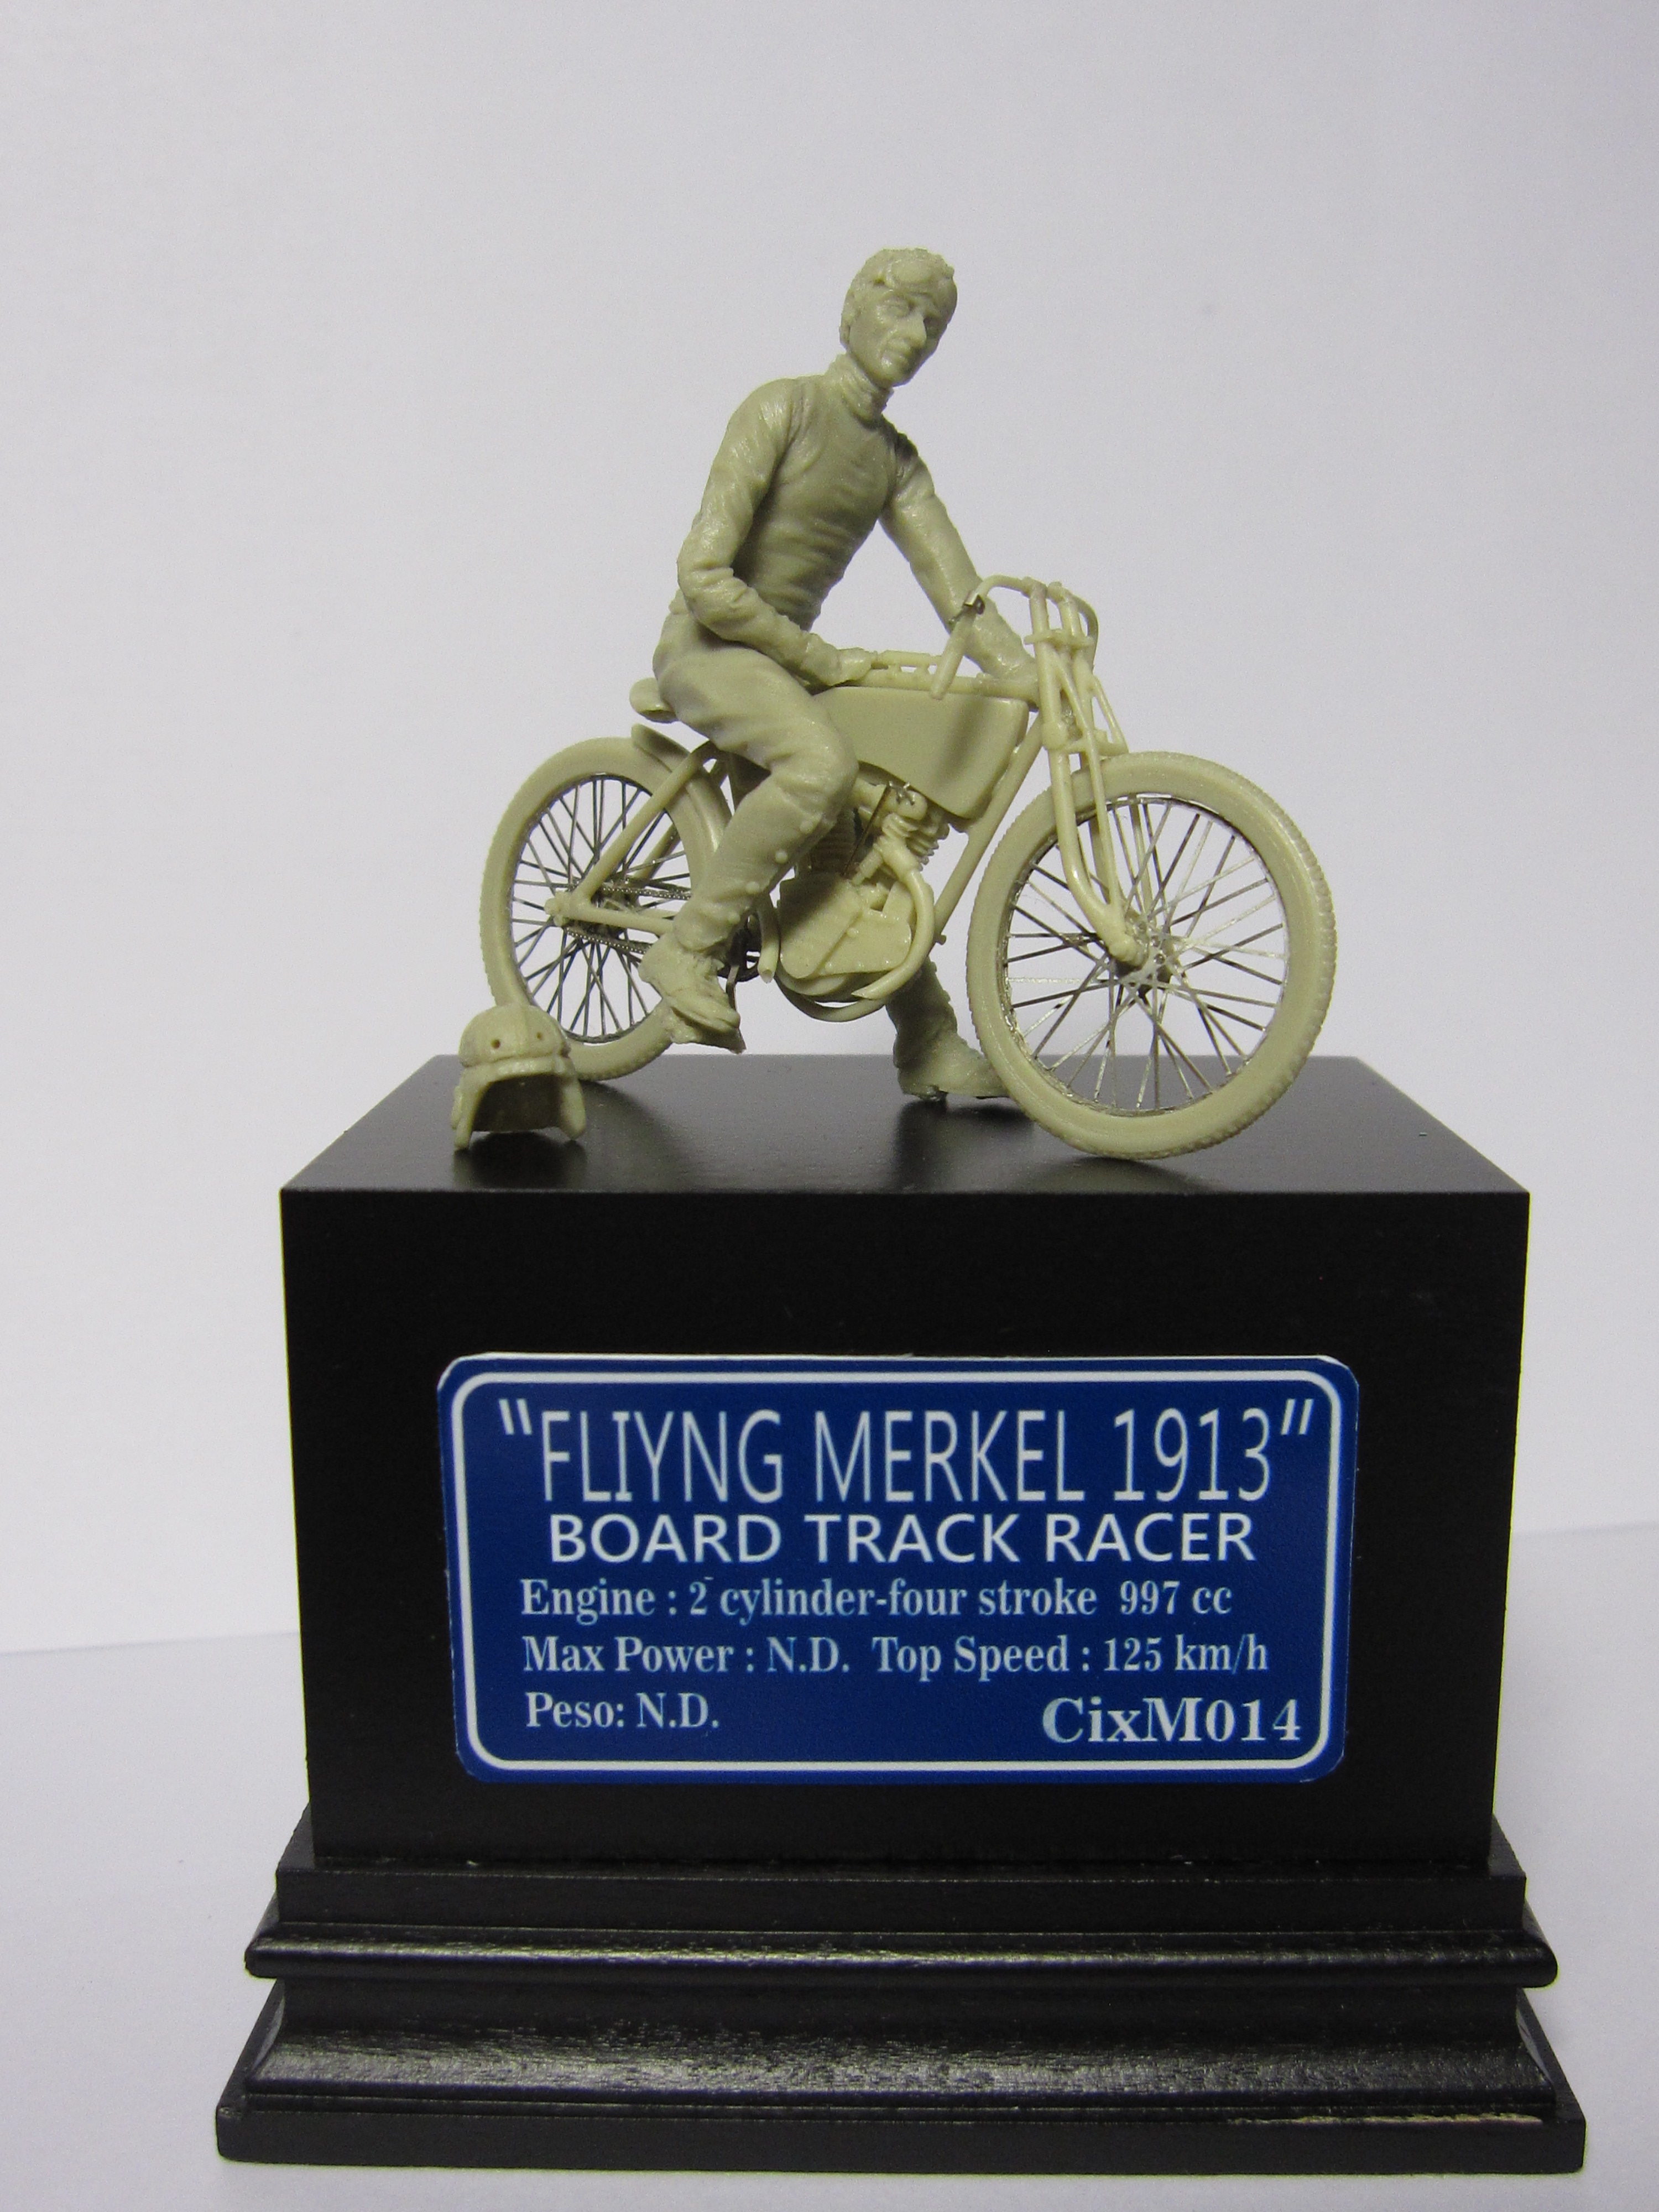 CixM014 FLYING MERKEL RACER 1913 WITH PILOT 1:35 – cixmodels